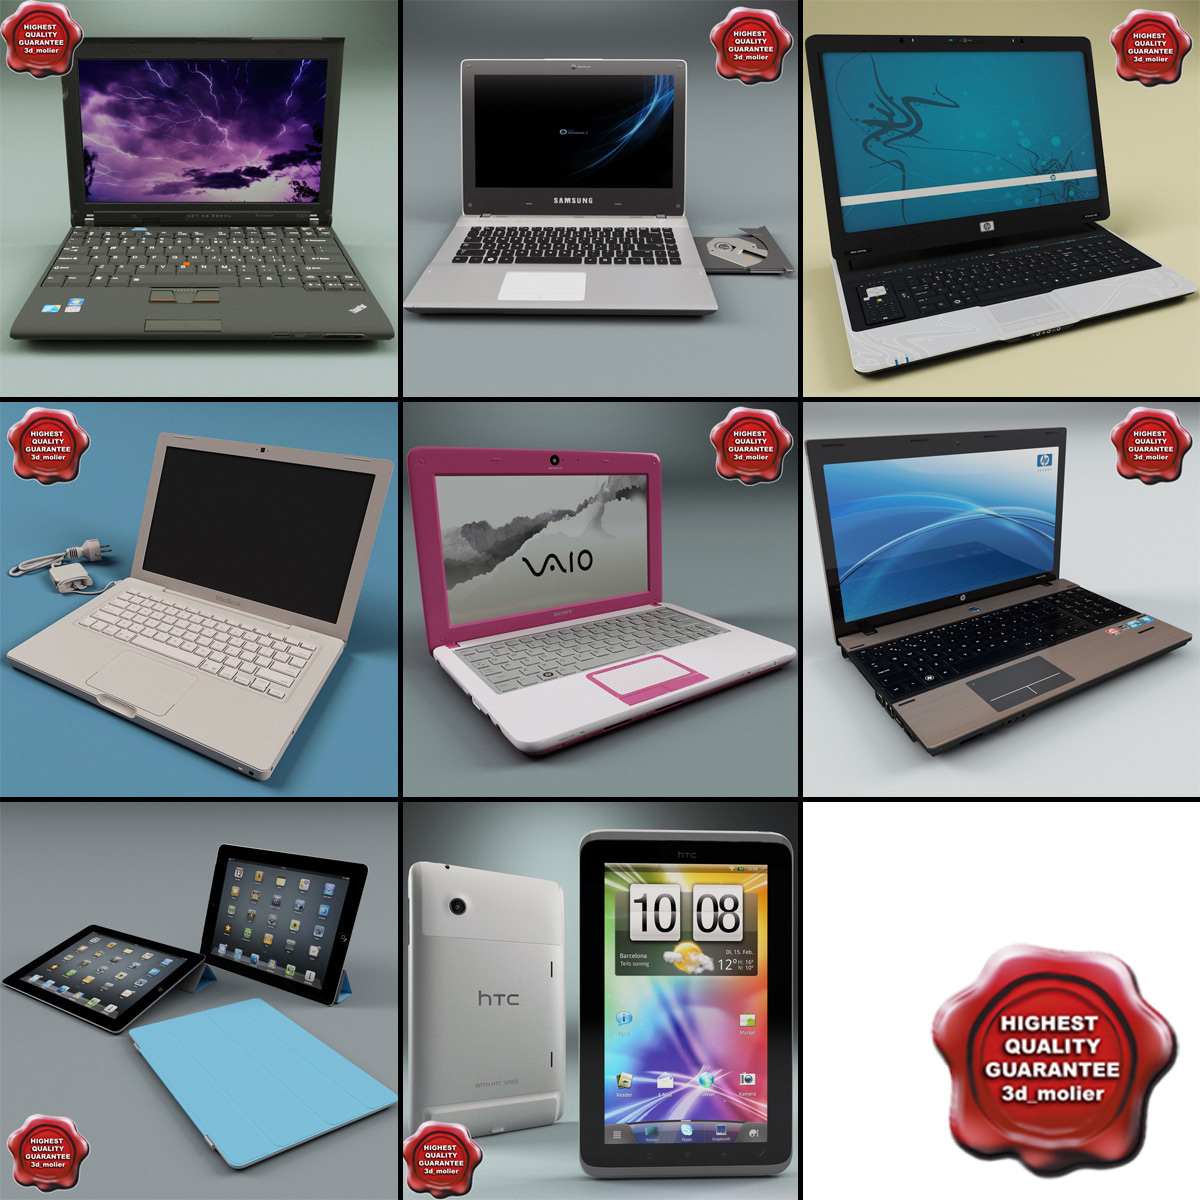 Laptops_Collection_V3_000.jpg